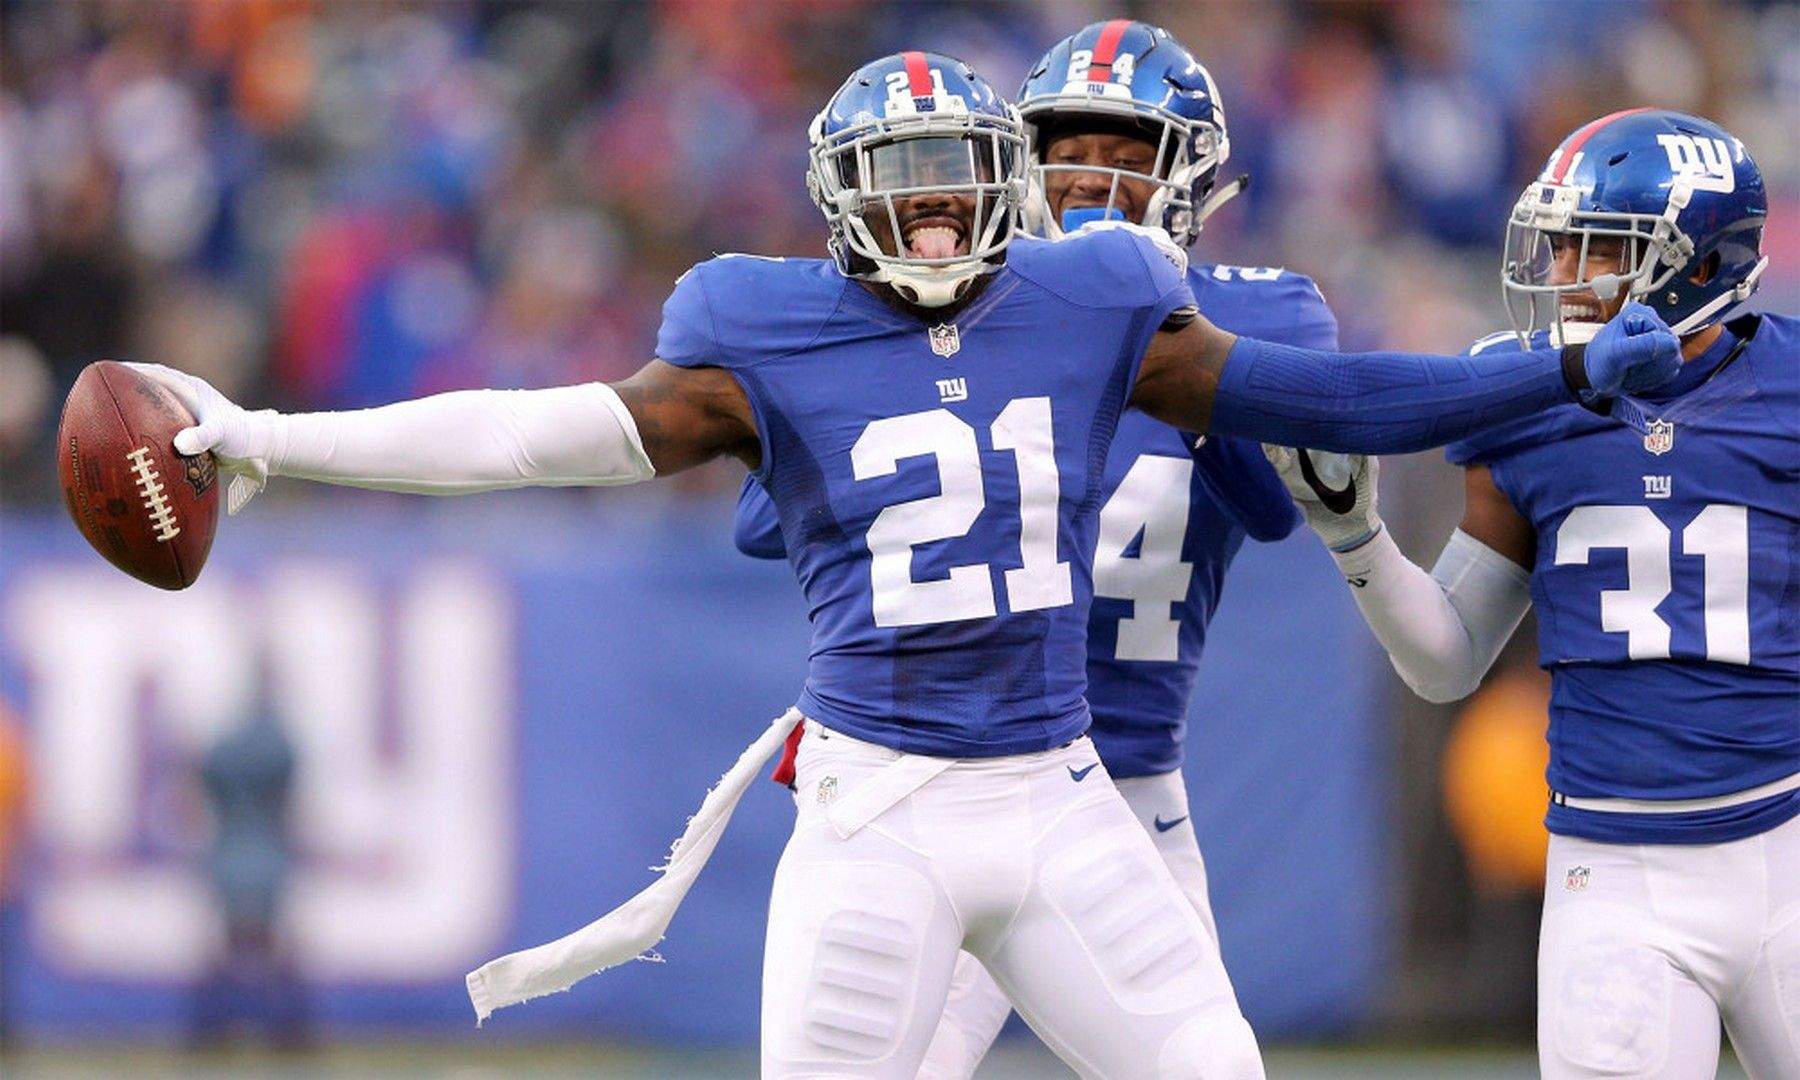 Hd Landon Collins Wallpaper Football New York Giants Fantasy Football